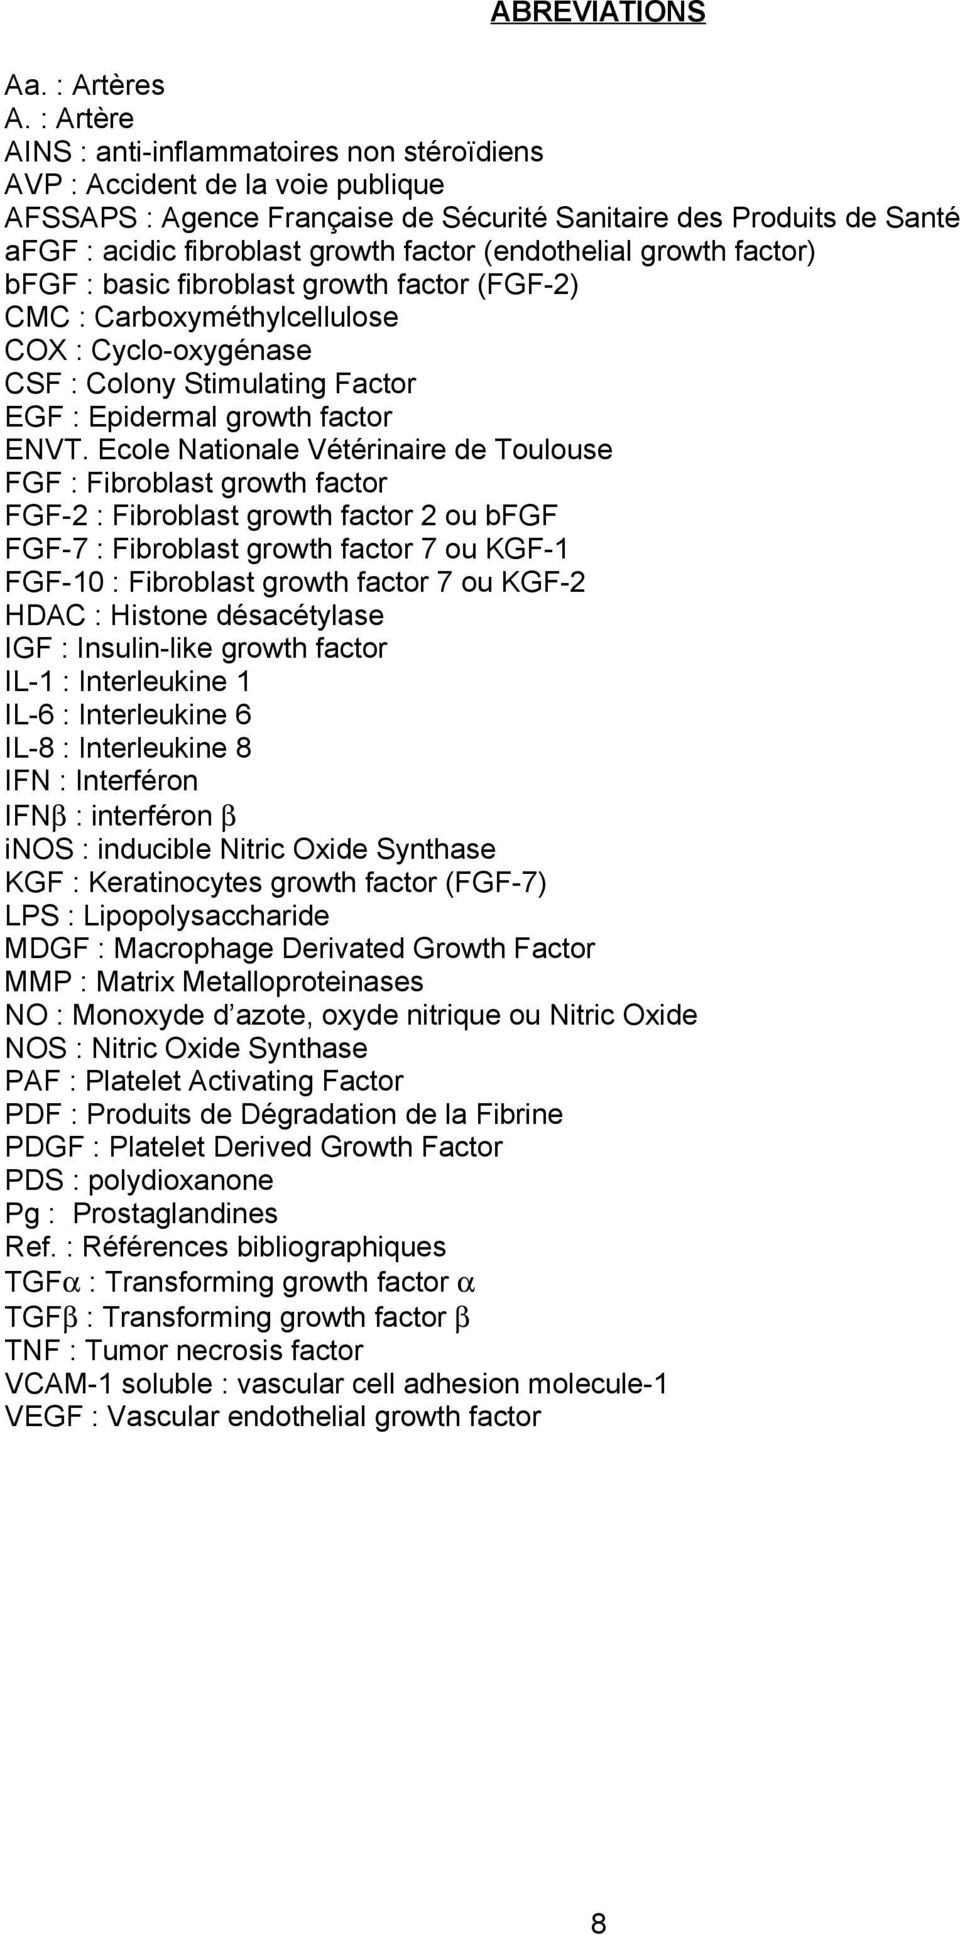 (endothelial growth factor) bfgf : basic fibroblast growth factor (FGF-2) CMC : Carboxyméthylcellulose COX : Cyclo-oxygénase CSF : Colony Stimulating Factor EGF : Epidermal growth factor ENVT.